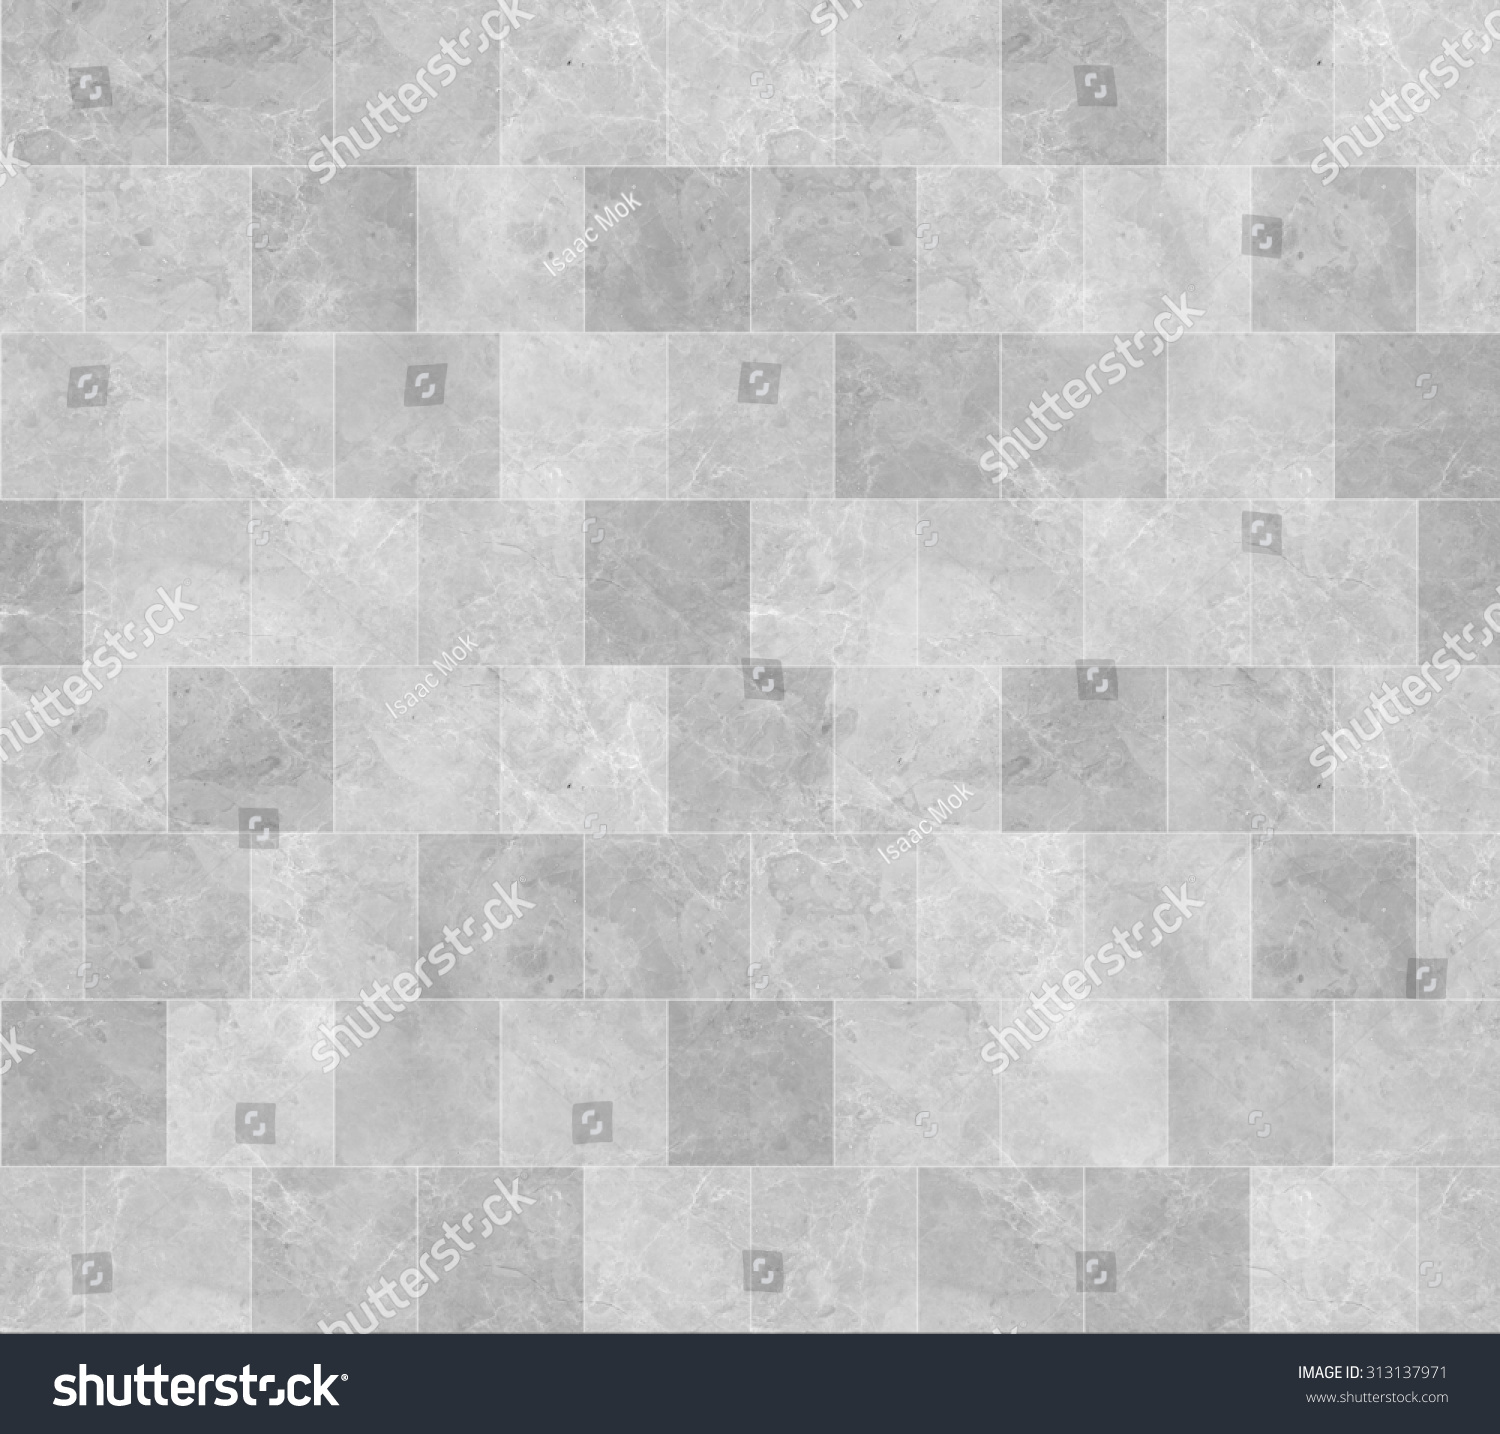 stone tile texture. Seamless Grey Marble Stone Tile Texture with White Joint Line Stock Photo 313137971